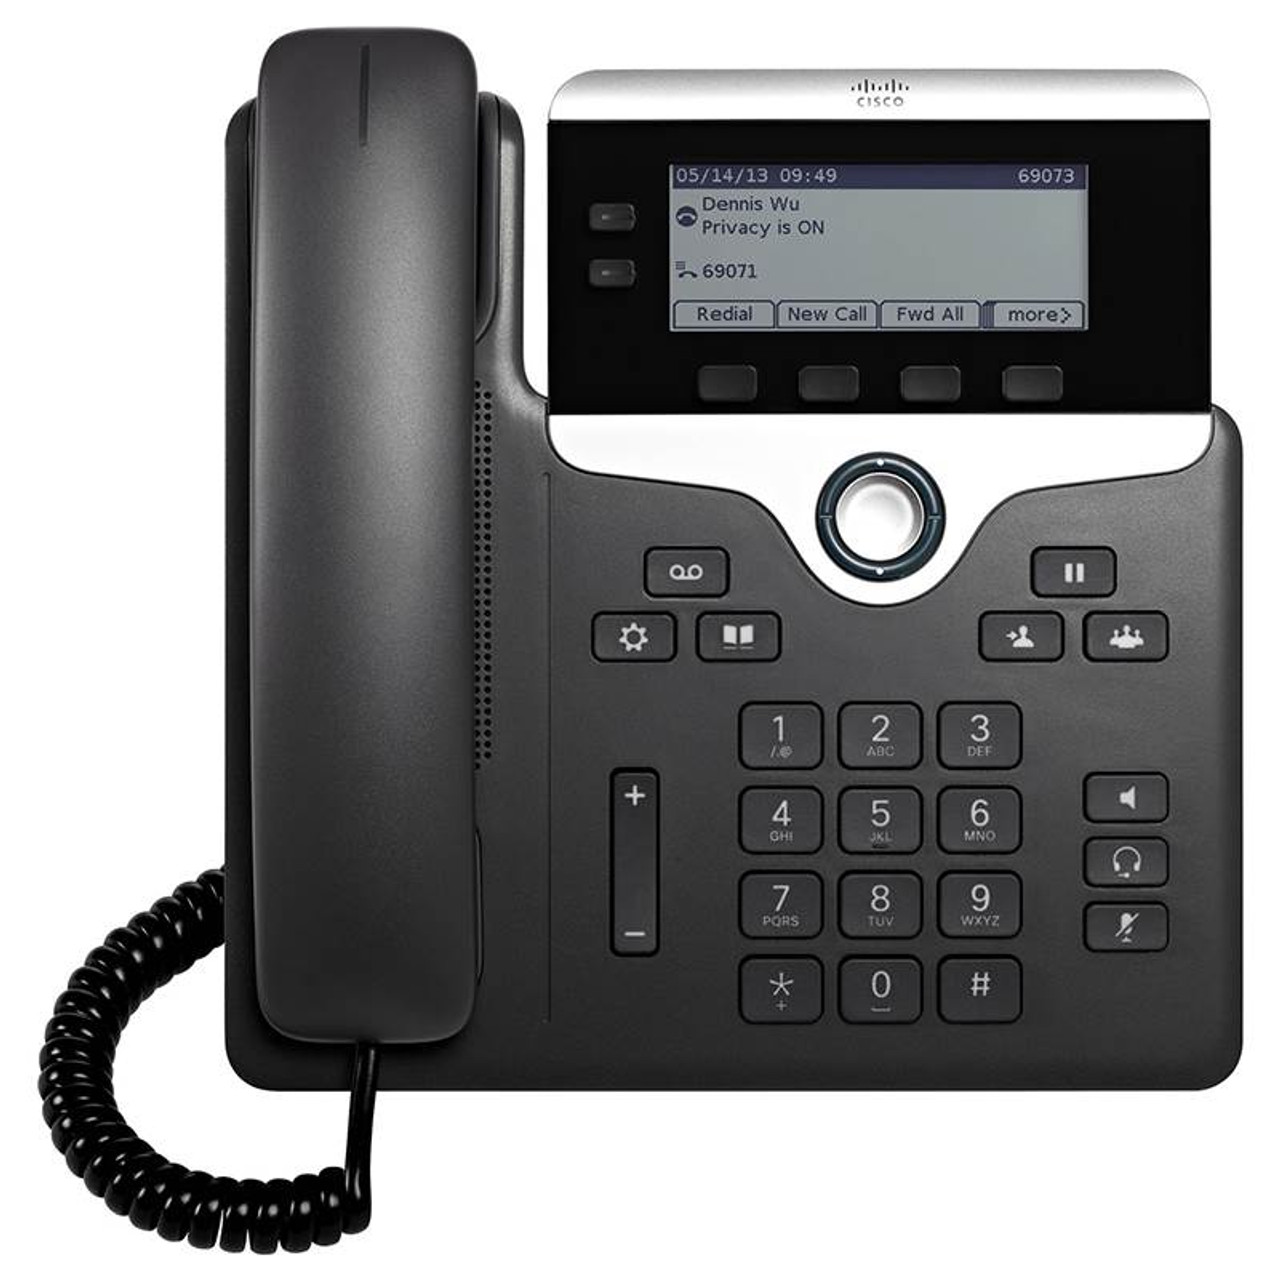 Product image for Cisco 7821 IP Phone  | CX Computer Superstore